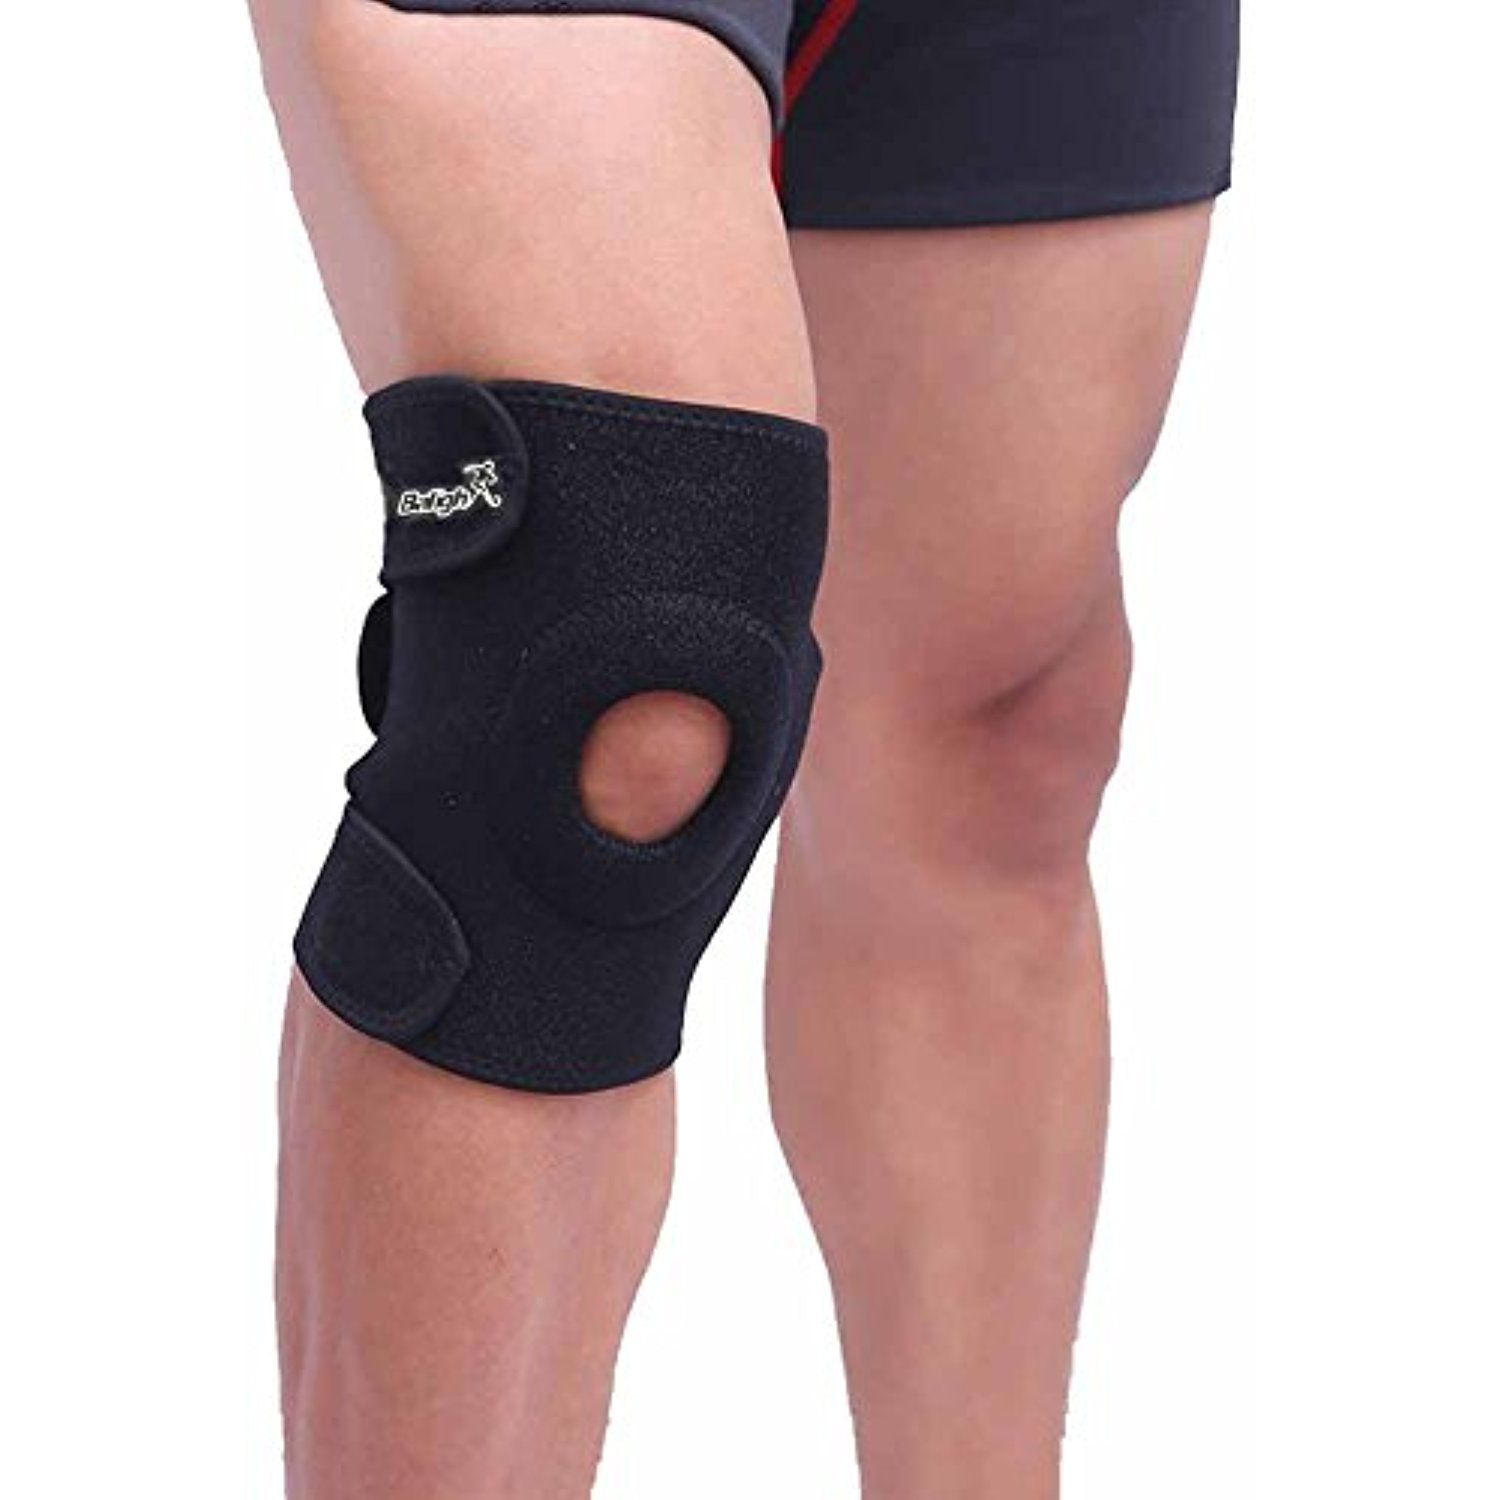 Balight Breathbale Knee Support With Open Patella Fully Adjustable